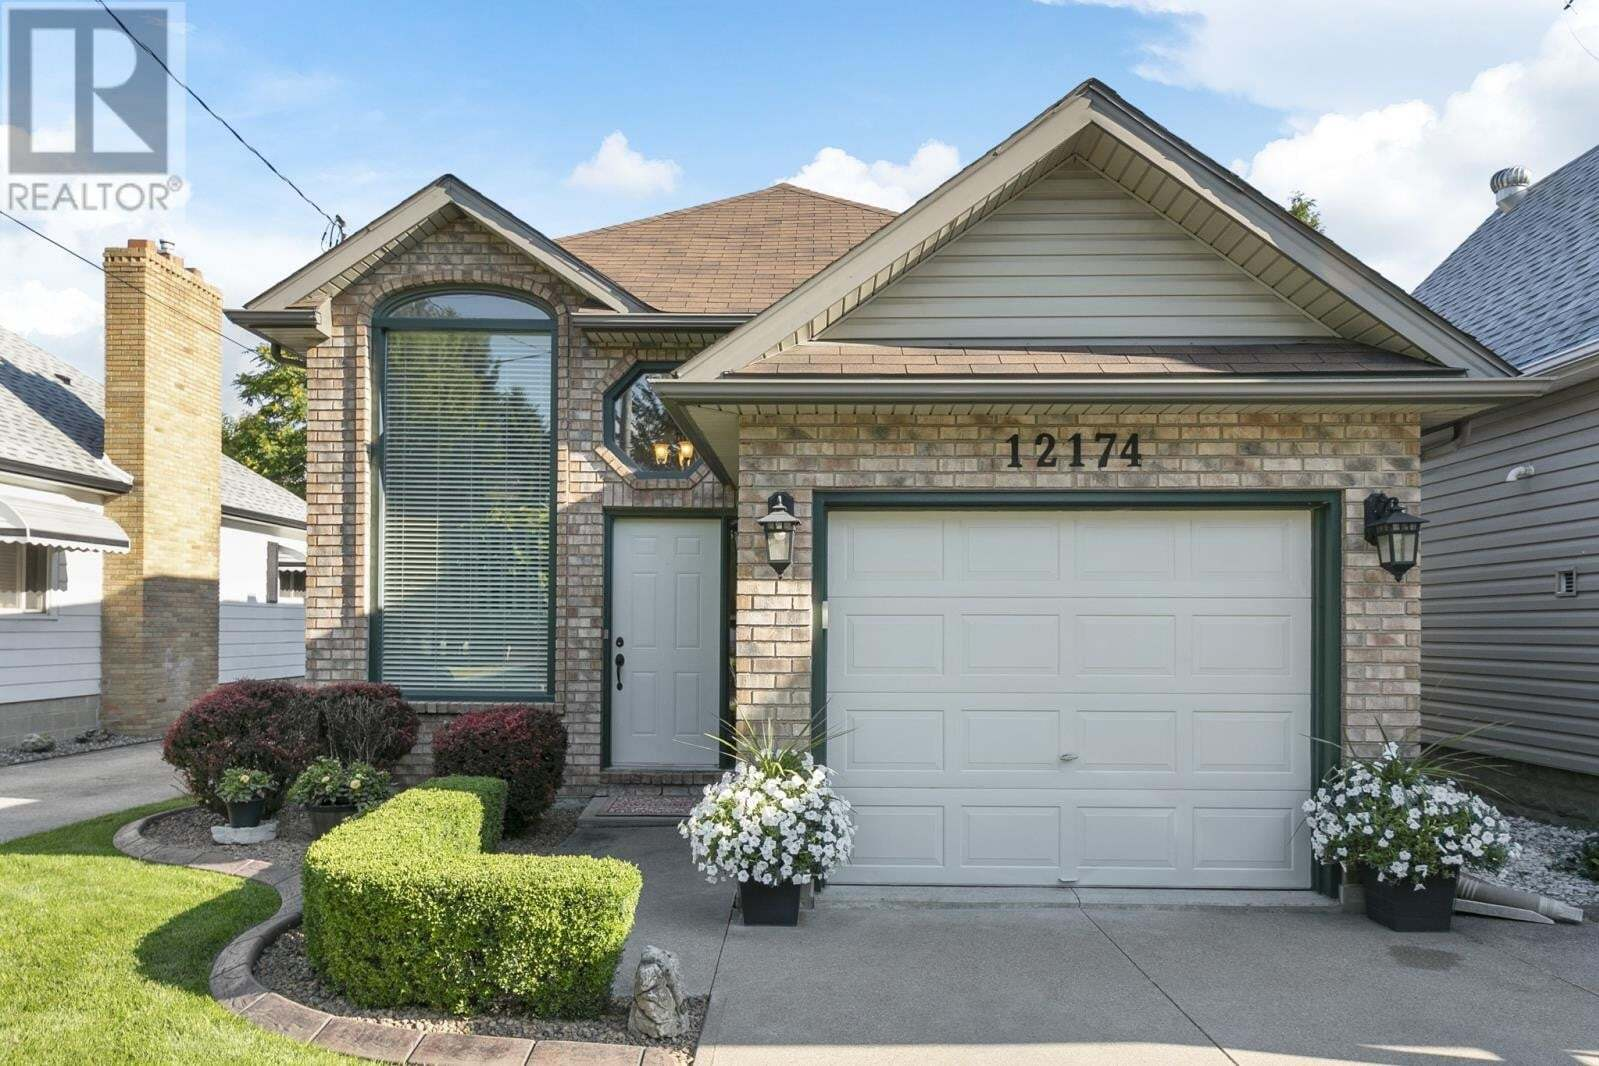 House for sale at 12174 St. Jacques  Tecumseh Ontario - MLS: 20009980